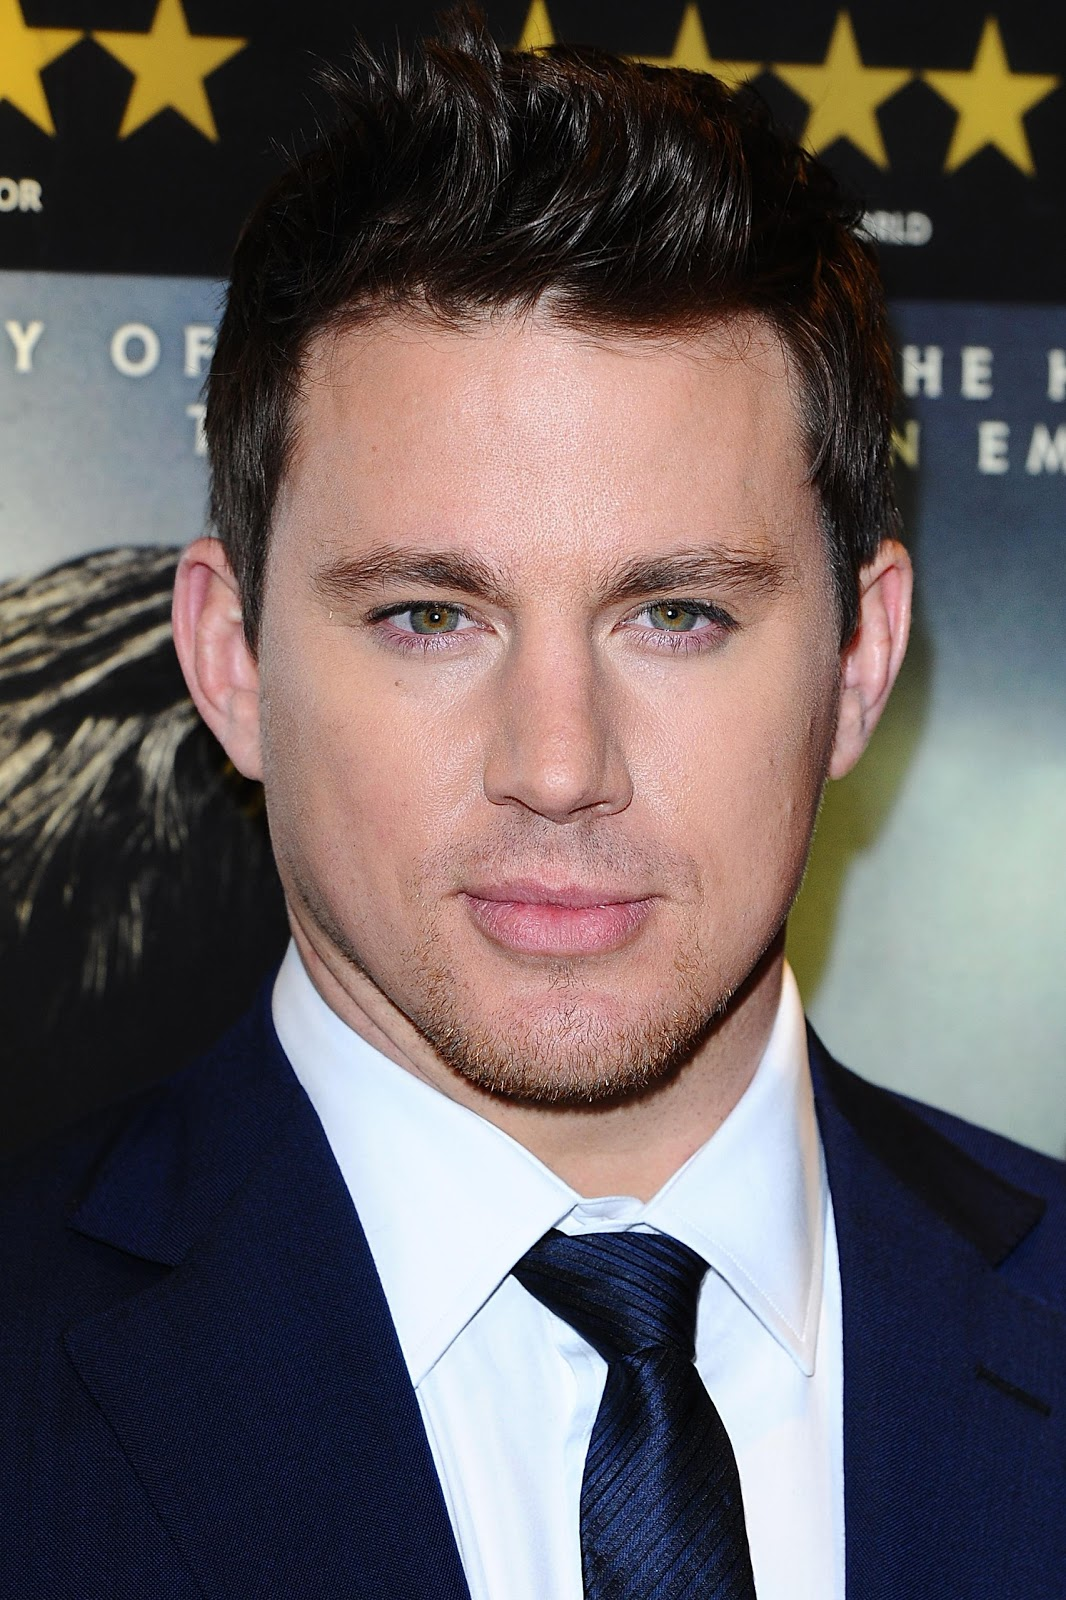 Hollywood: Channing Tatum Profile, Pictures, Images And ... ченнинг татум